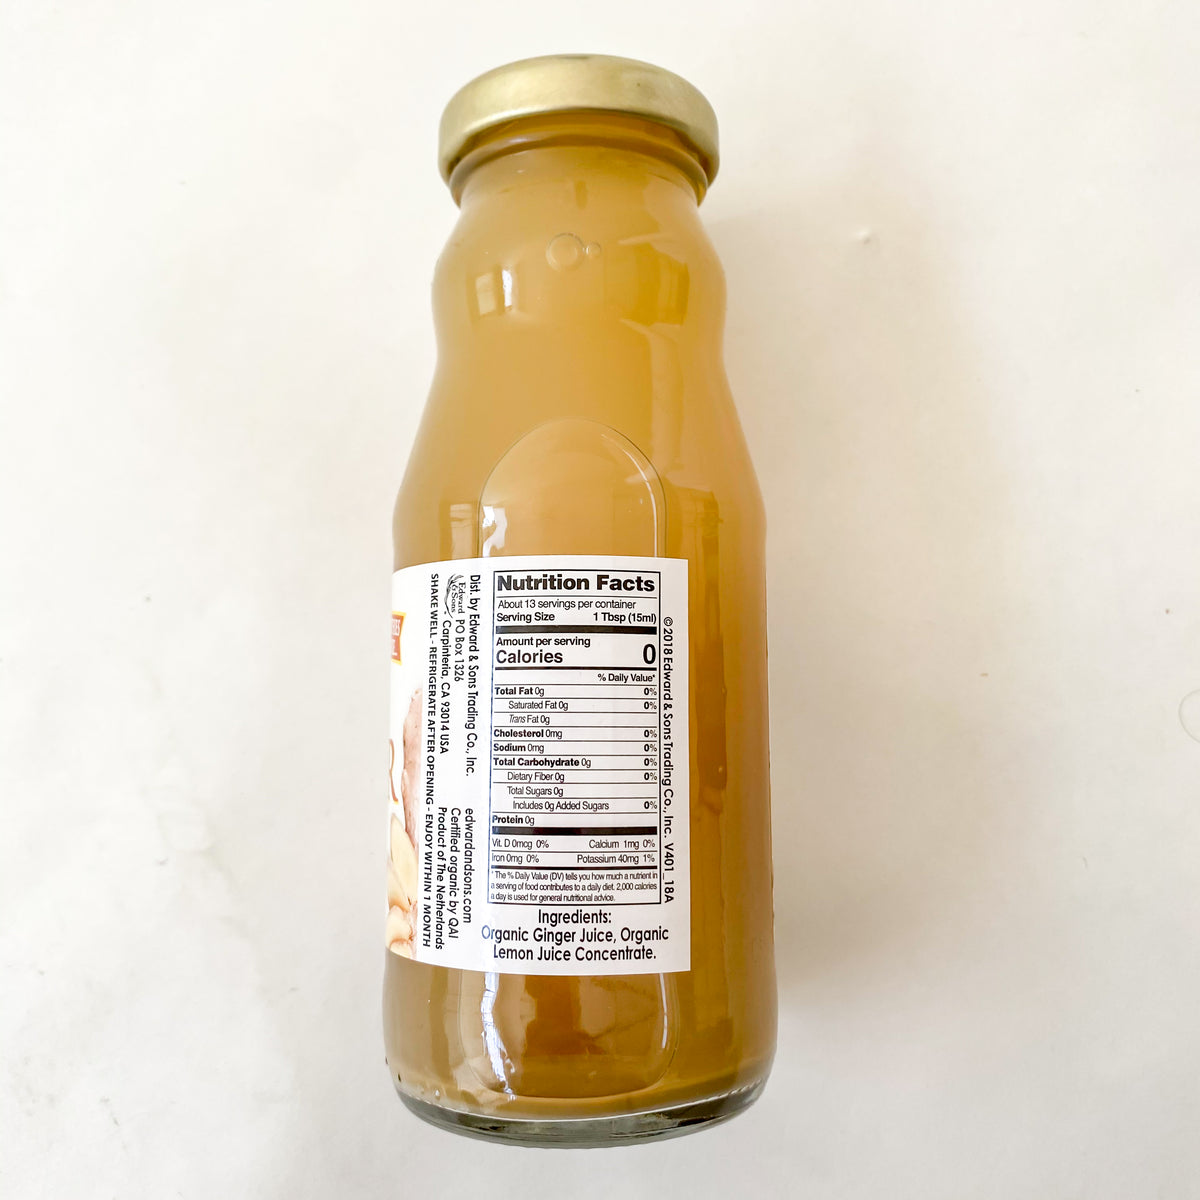 Edward & Sons Ginger Juice